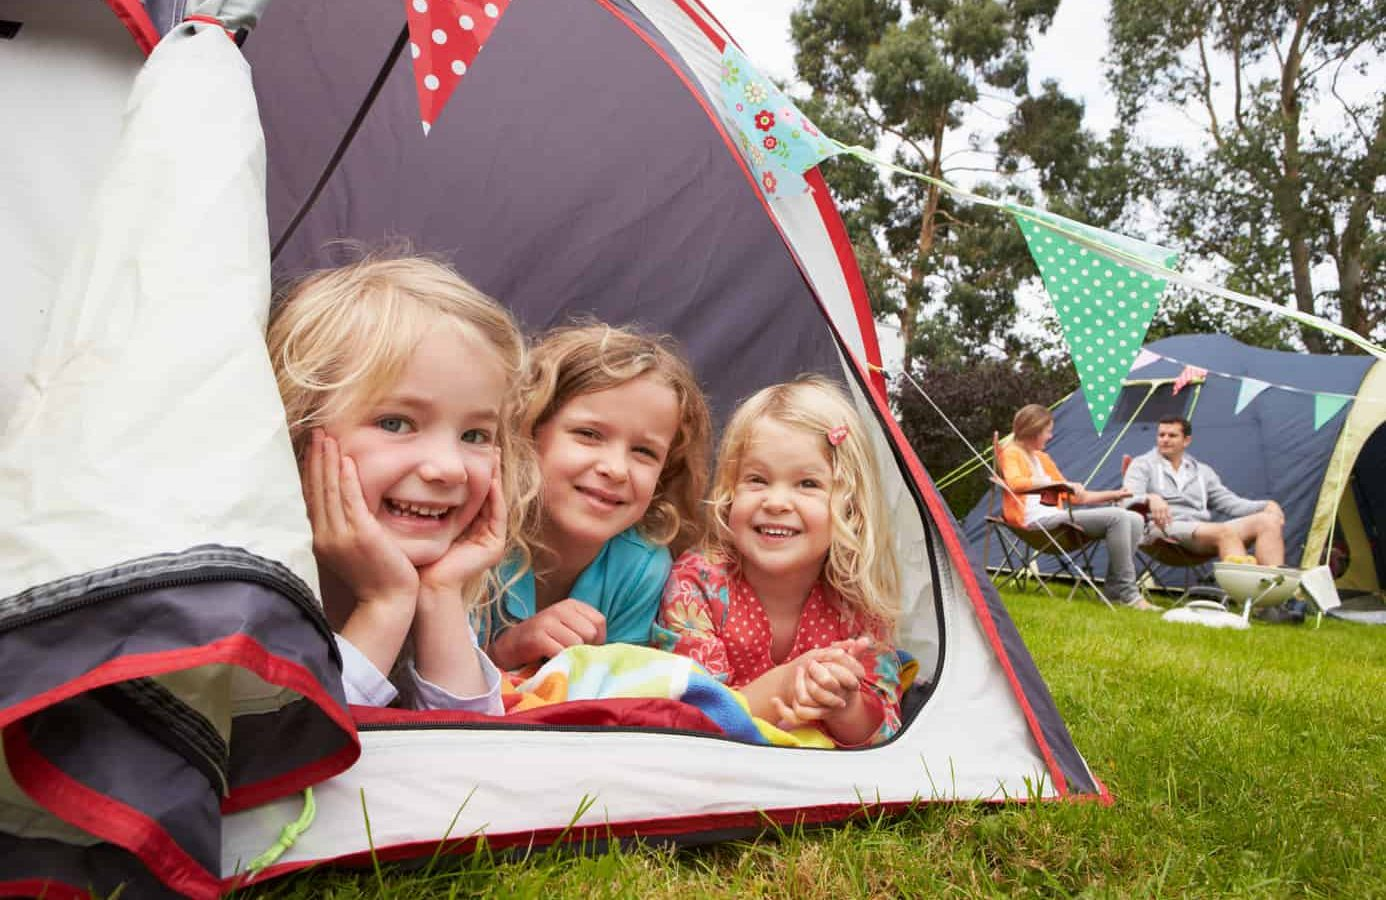 How to Prepare Your Kids for Camping @ AVirtuousWoman.org